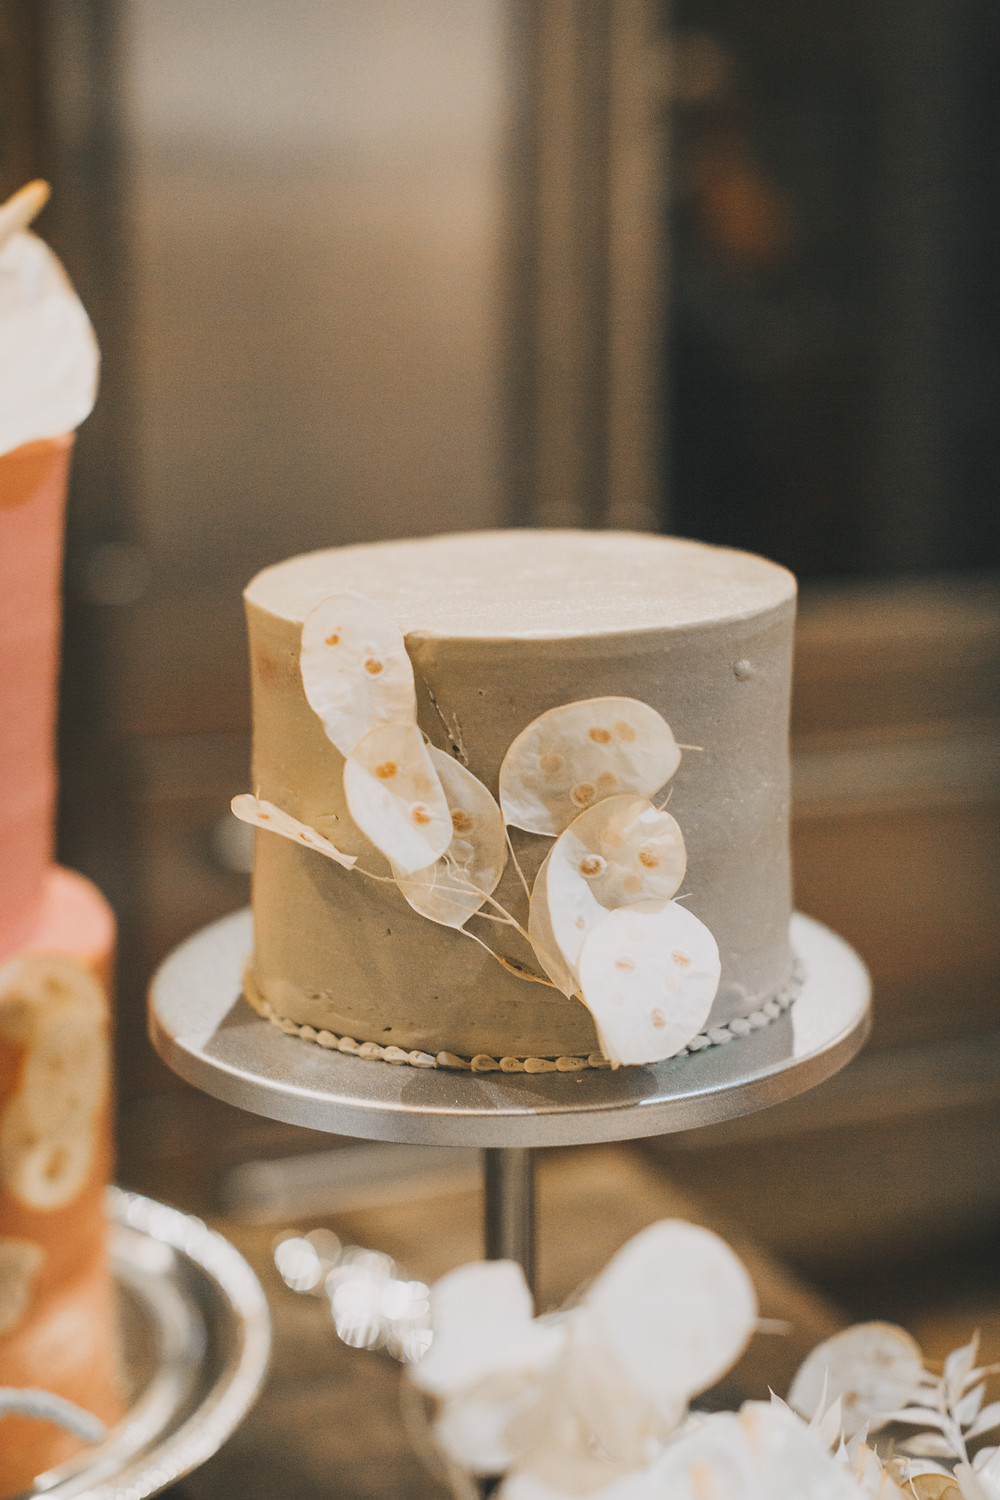 Lovegood Wedding & Event Rentals, New Orleans Vintage Rental Company for Corporate, Parties, and Weddings | Lounge Furniture in NOLA, Specialty Rentals, Decor across the Southeast, Cream Boho Wedding Cake